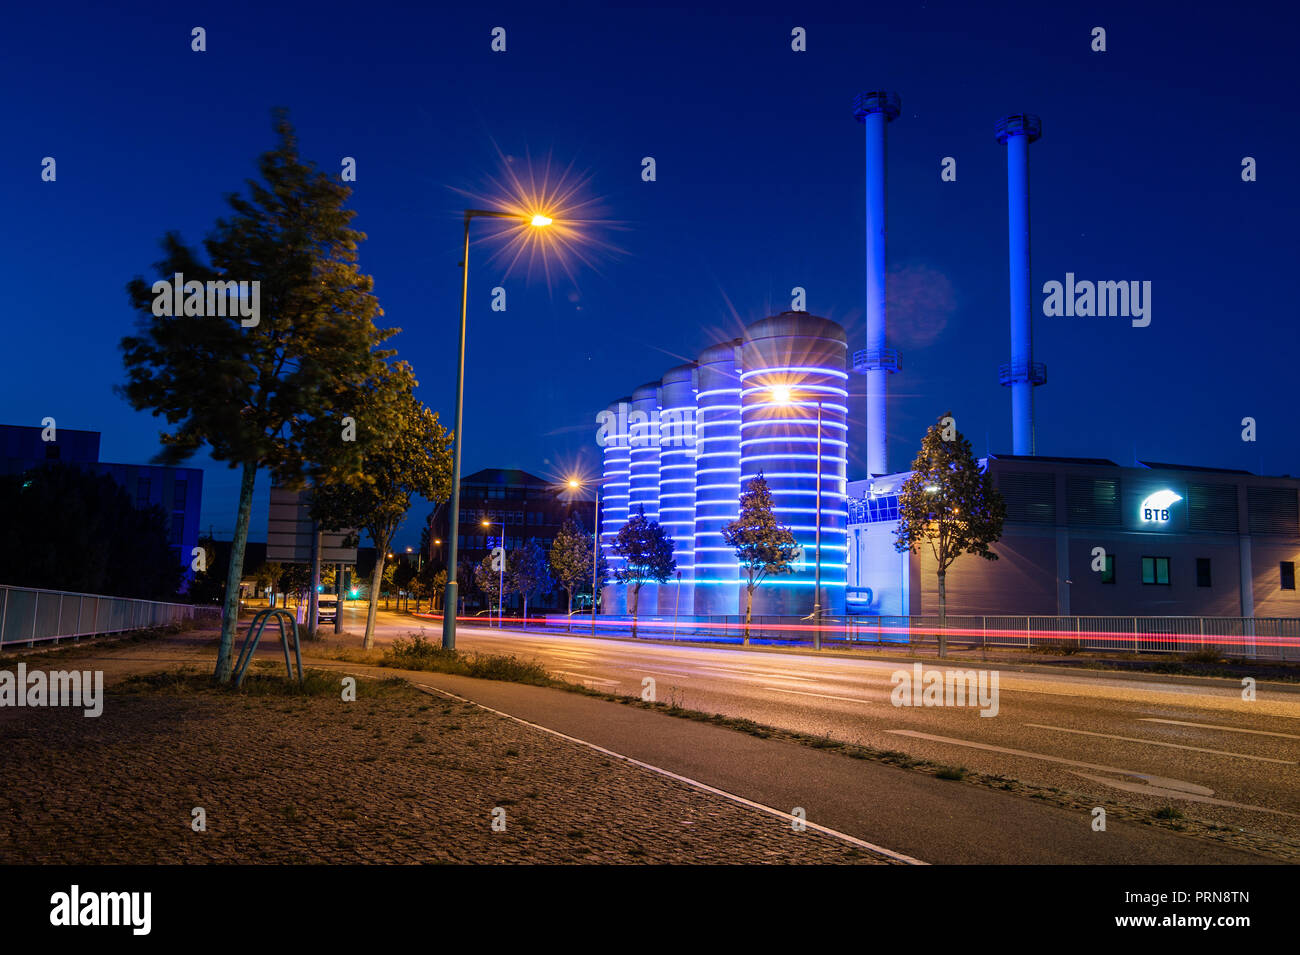 03 October 2018, Berlin: LED rings illuminate the water tanks of the Adlershof combined heat and power plant of RWE subsidiary BTB in the blue hour. (Long exposure time shooting) Photo: Arne Immanuel Bänsch/dpa - Stock Image